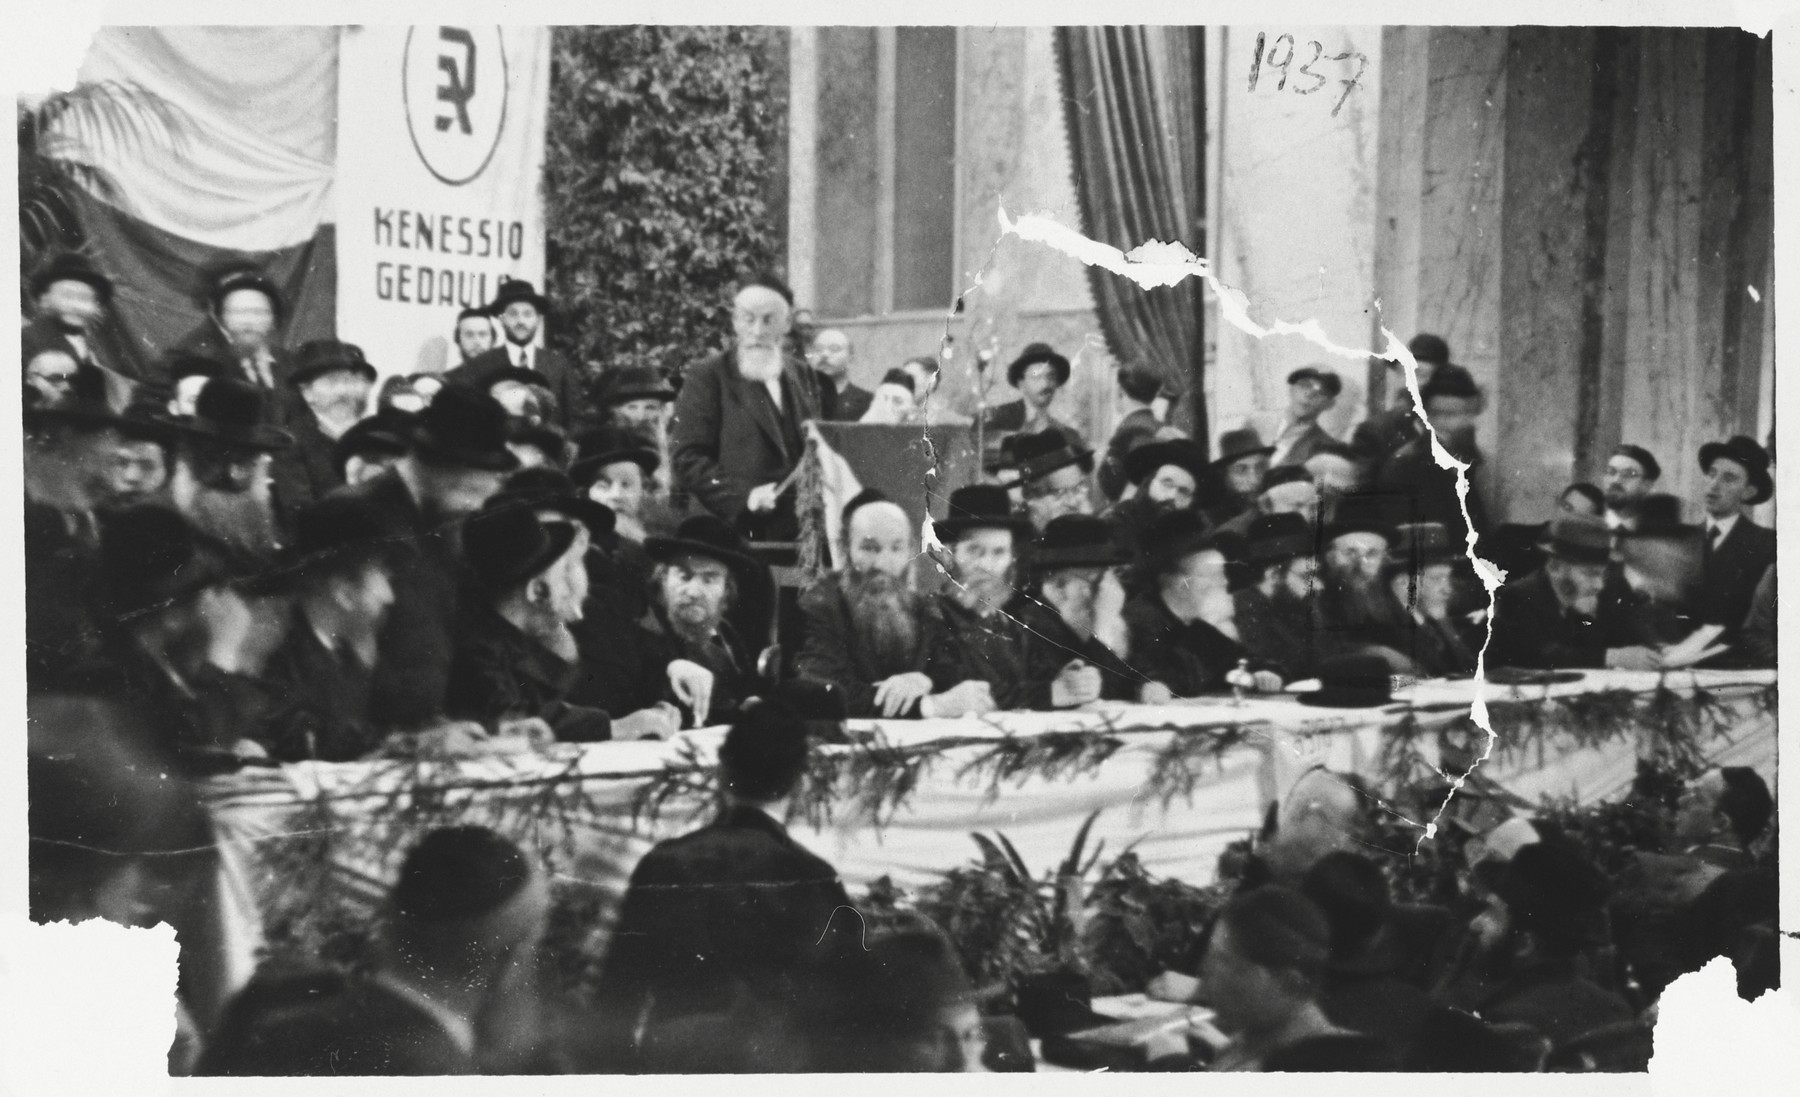 Religious Jews gather for an Agudat Yisrael convention in Marienbad.  Rabbi Yaakov Rosenheim from Germany is speaking.